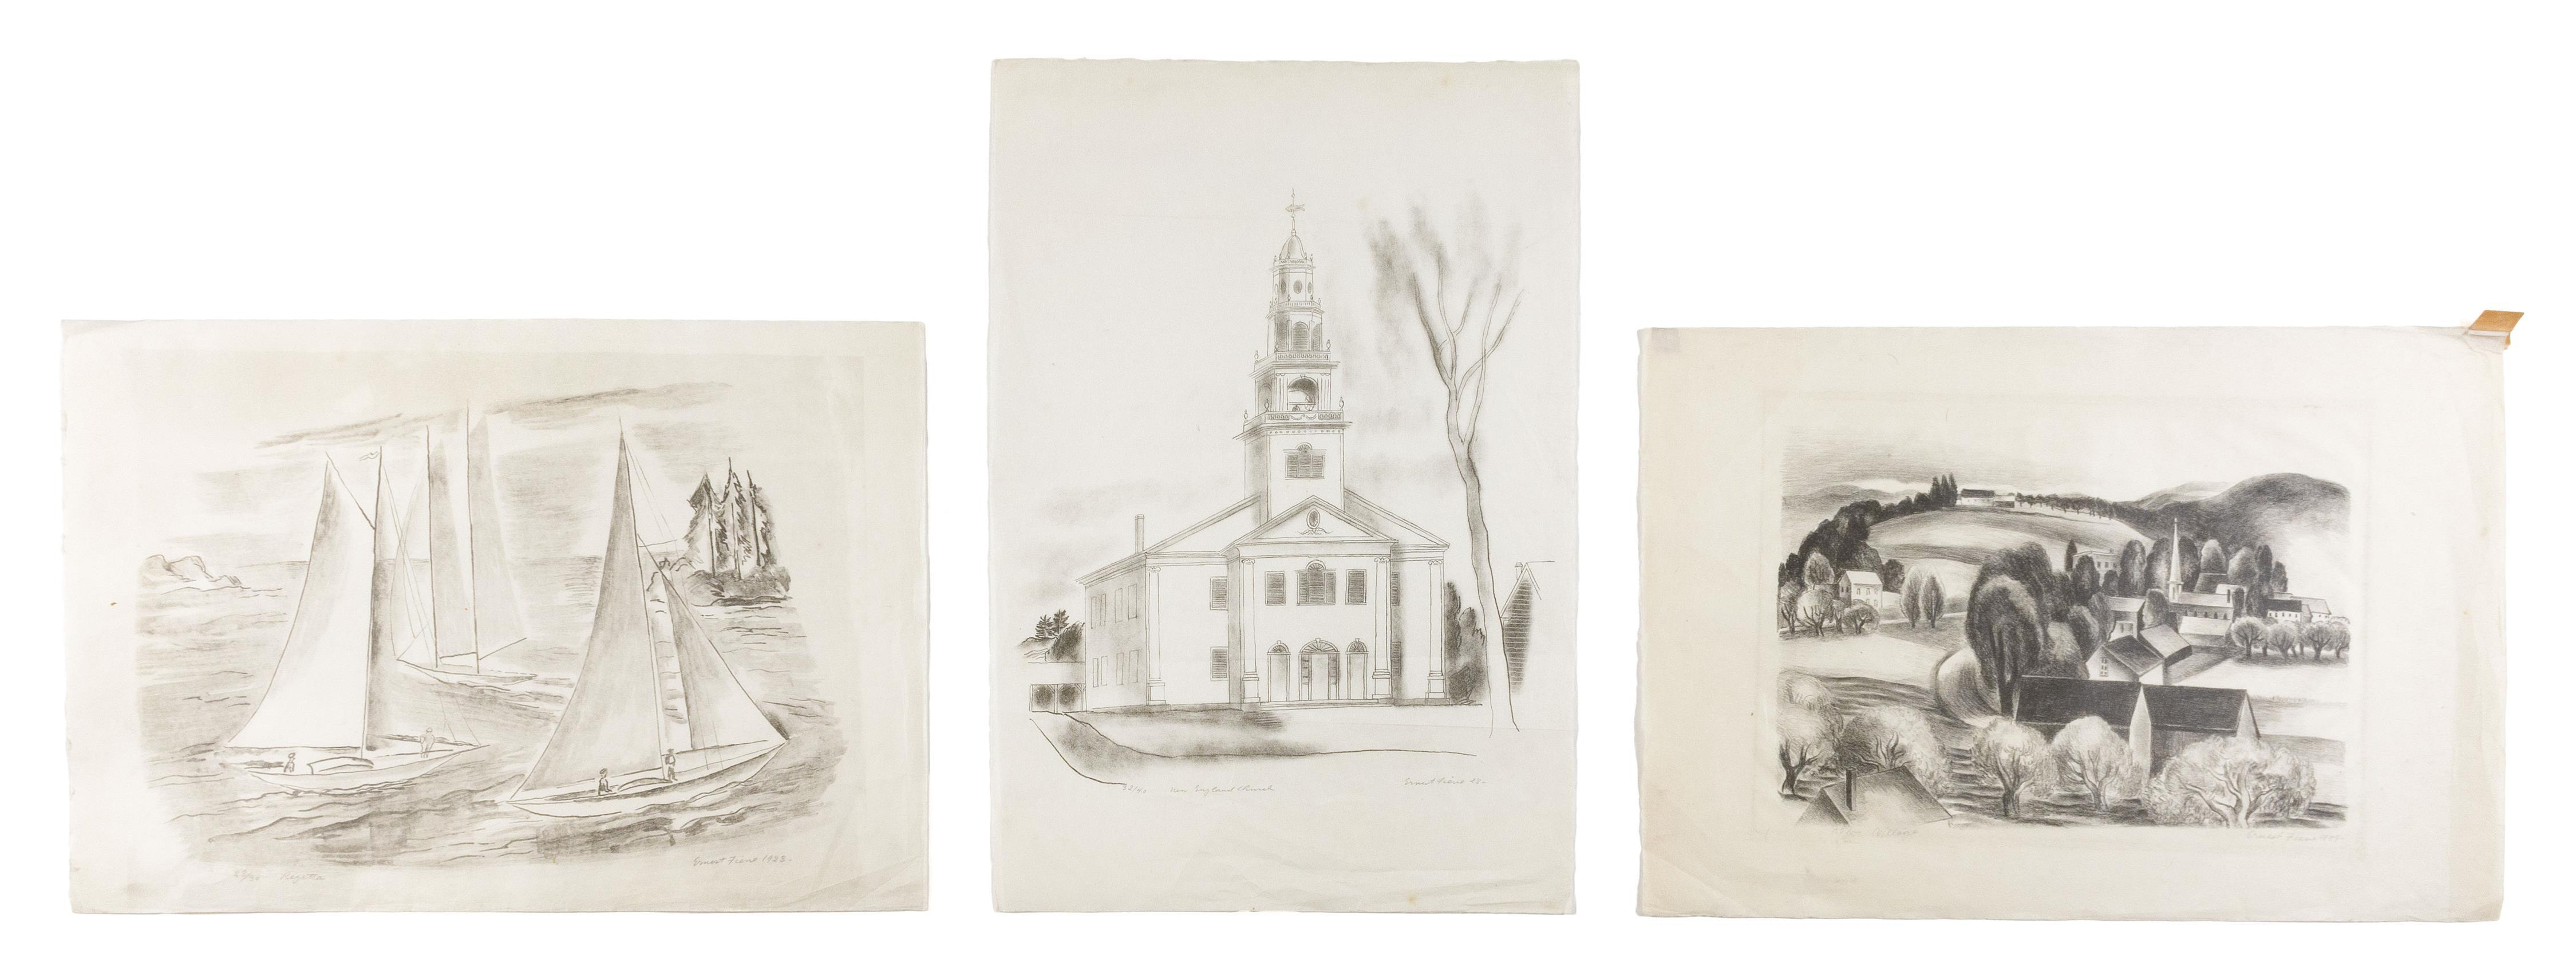 ERNEST FIENE, New York/Germany, 1894-1965, Three unframed lithographs on Japan paper: